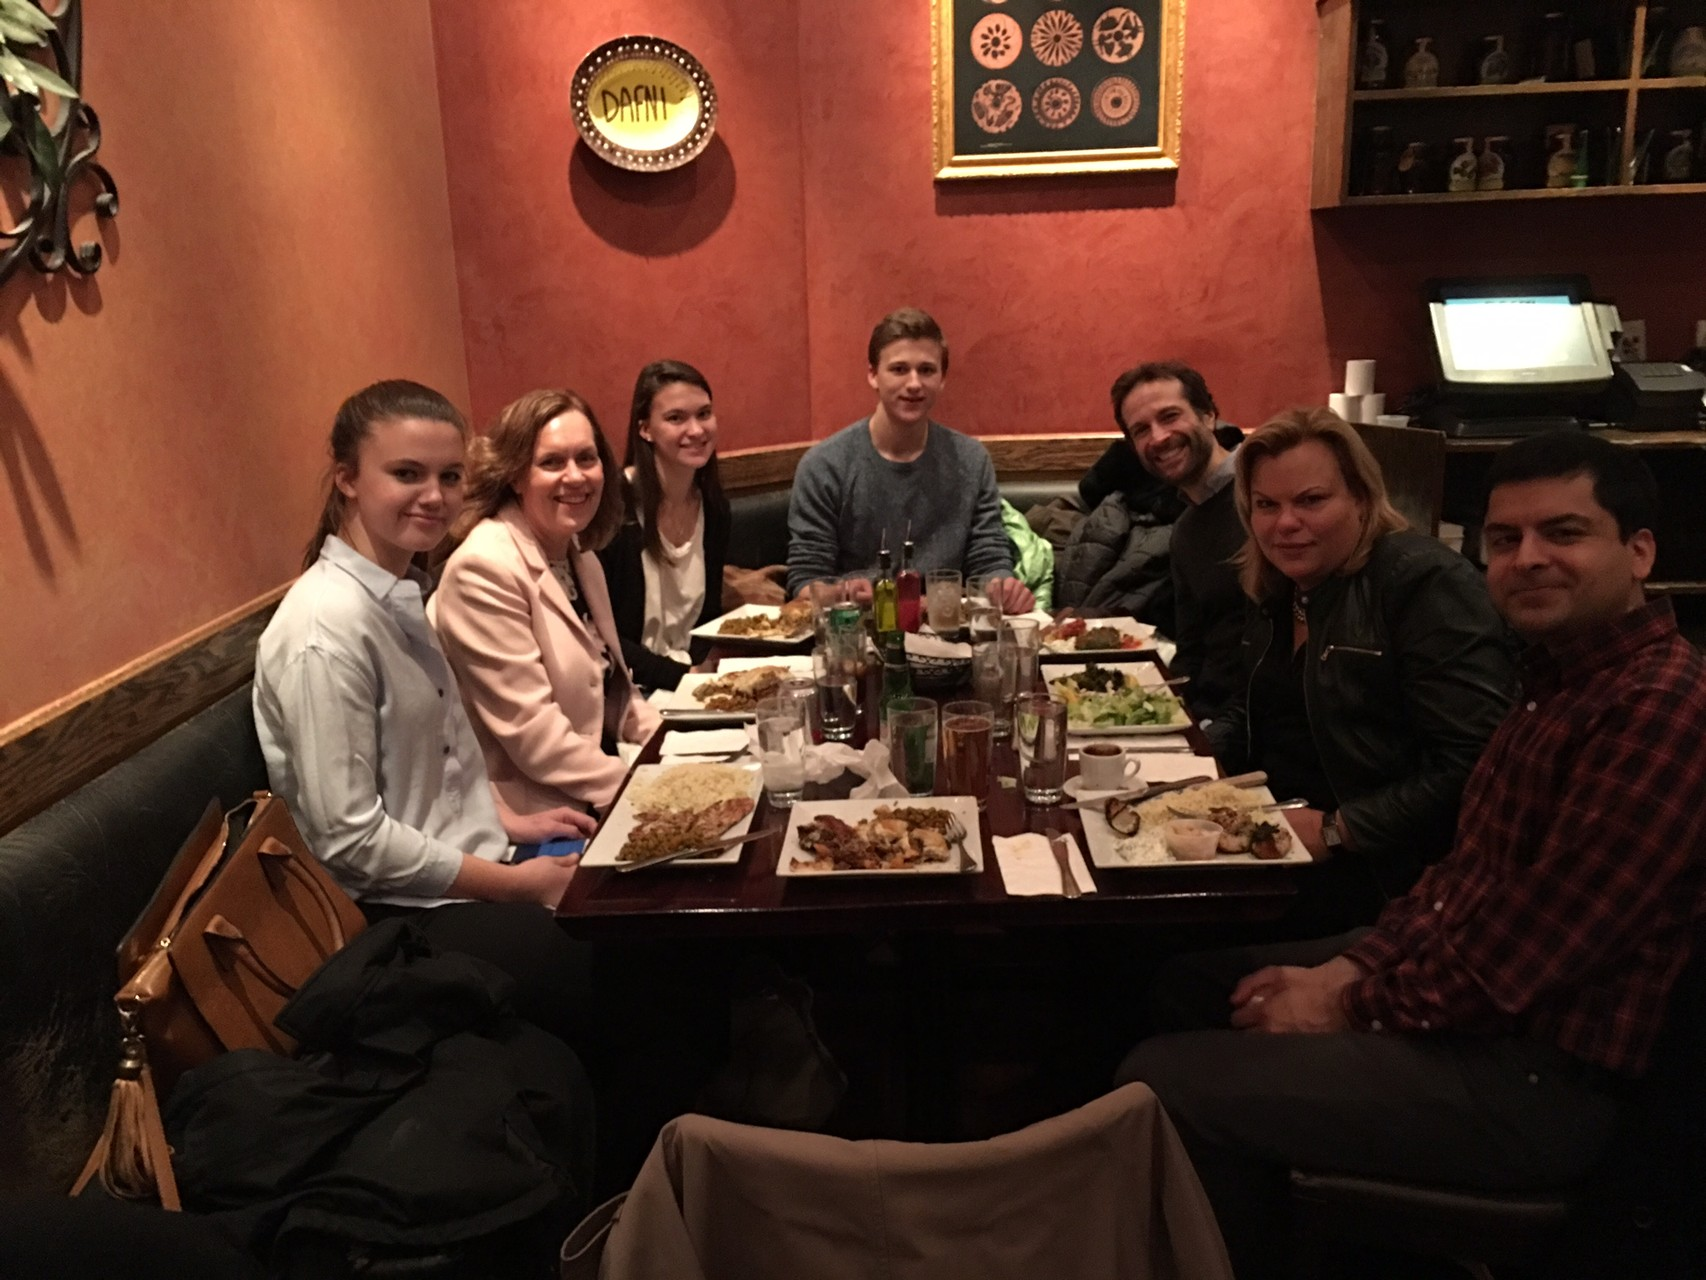 Kate, Lorraine, Ellie, Jack Kagel, Steve Trasino, Celeste, Samie Jaffrey at a Greek restaurant before the play HAMILTON, Feb 9, 2016. Kate & Jack's Bday Present!